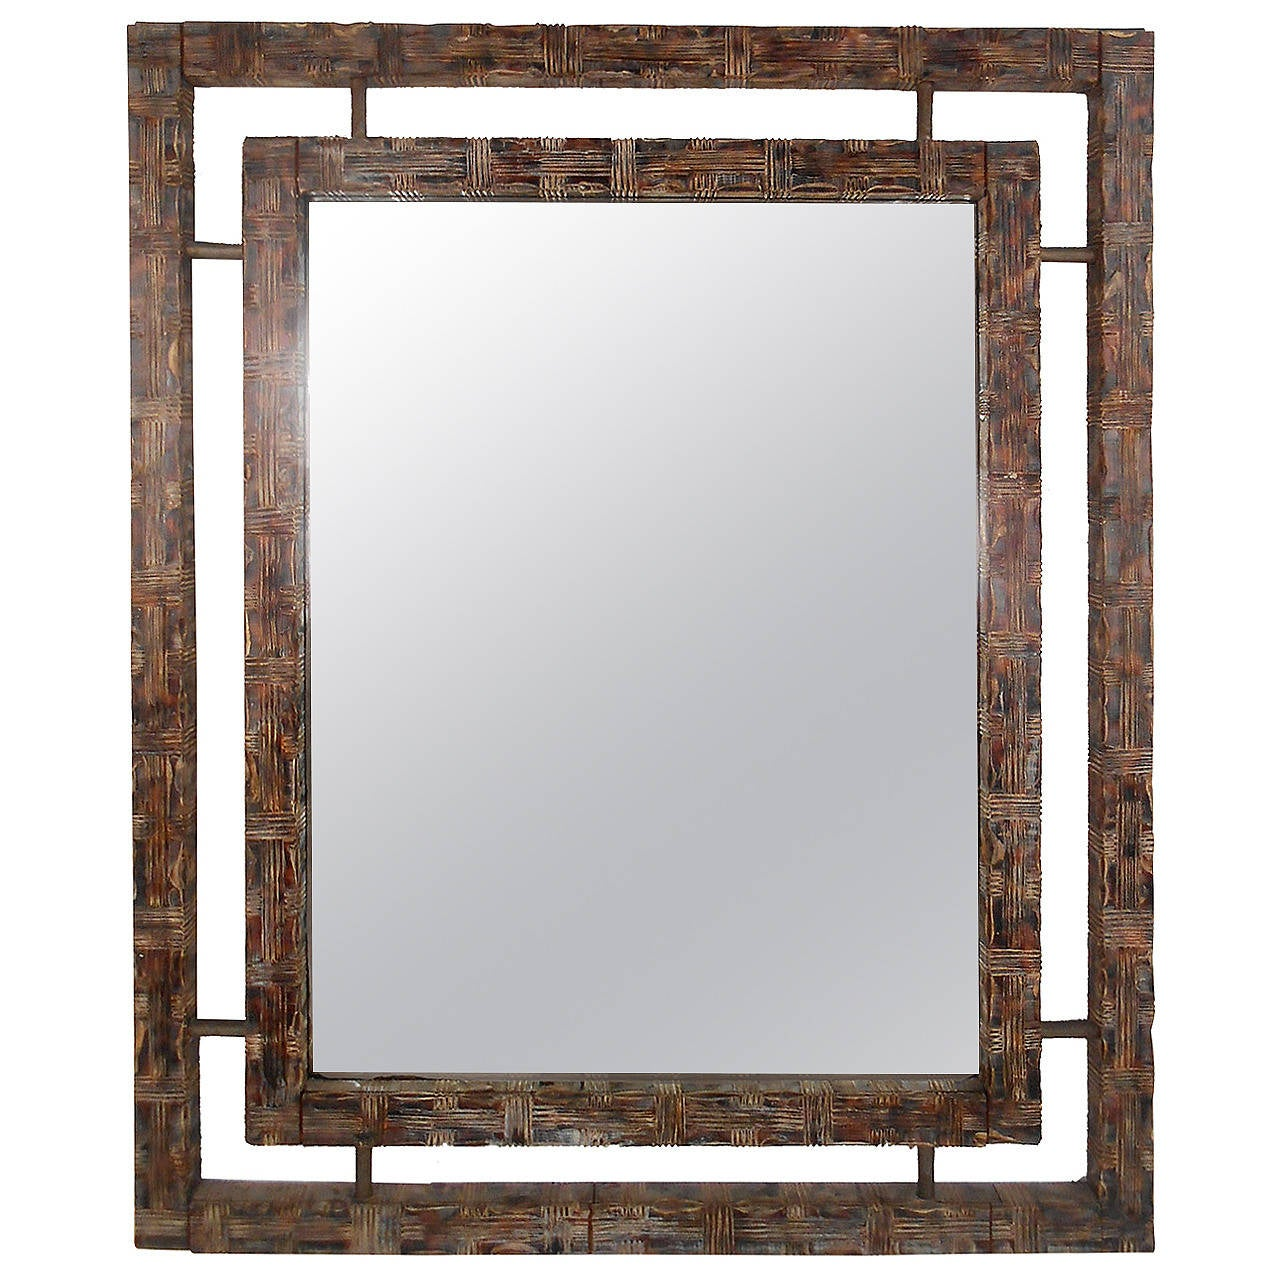 Interesting wall mirrors